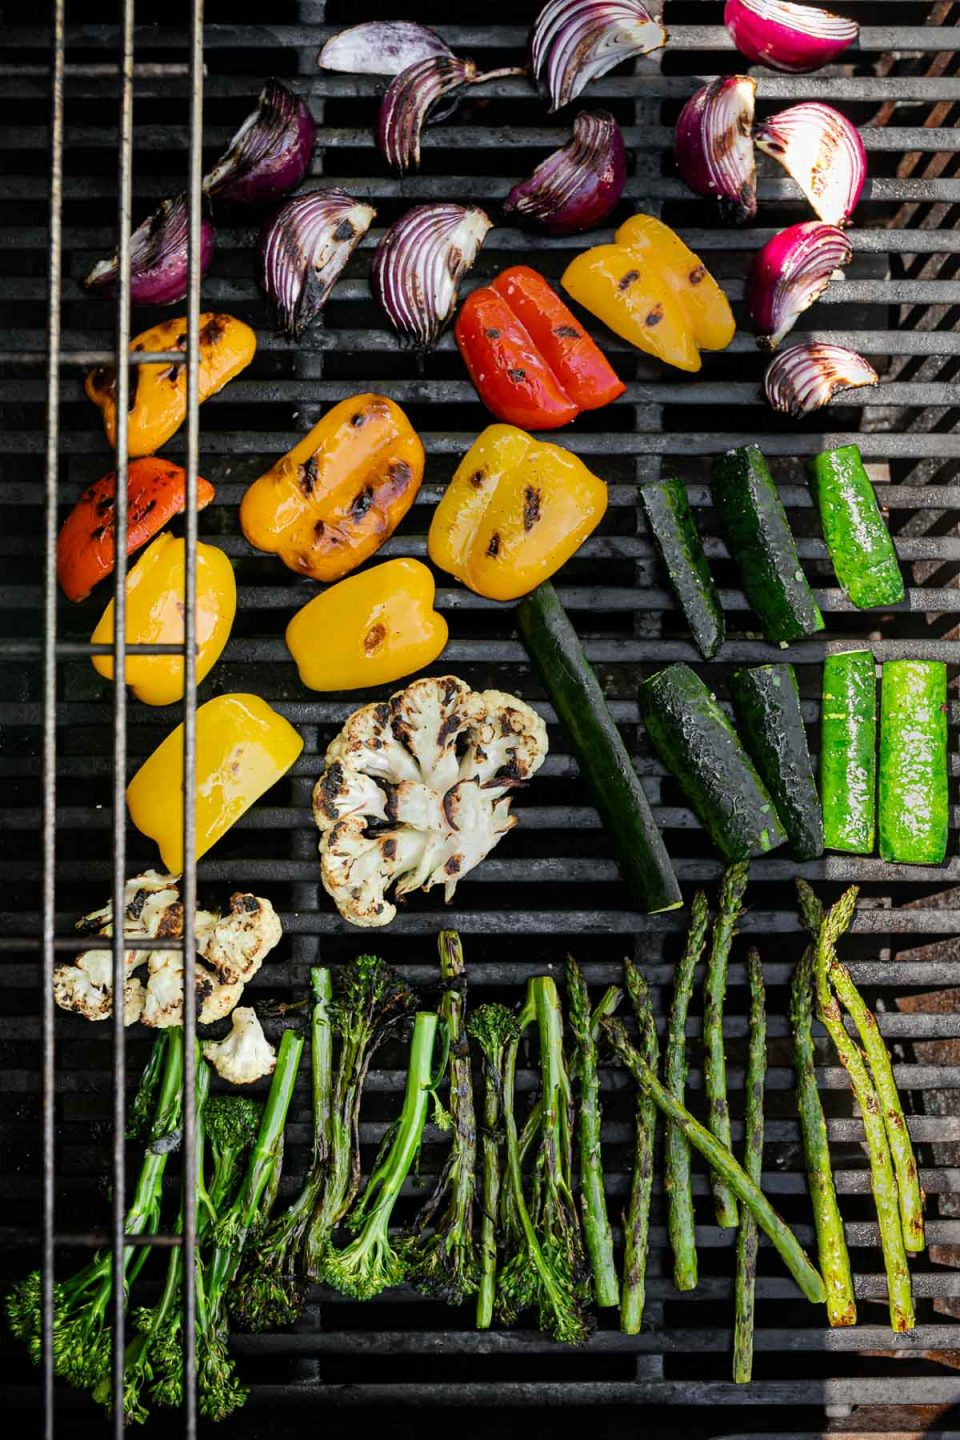 An overhead shot of a variety of grilled veggies including grilled broccolini, grilled asparagus, grilled cauliflower, grilled zucchini, grilled onion, & grilled peppers are being grilled on a gas grill grates. Many of the veggies have grill marks on them after being flipped to the other side.